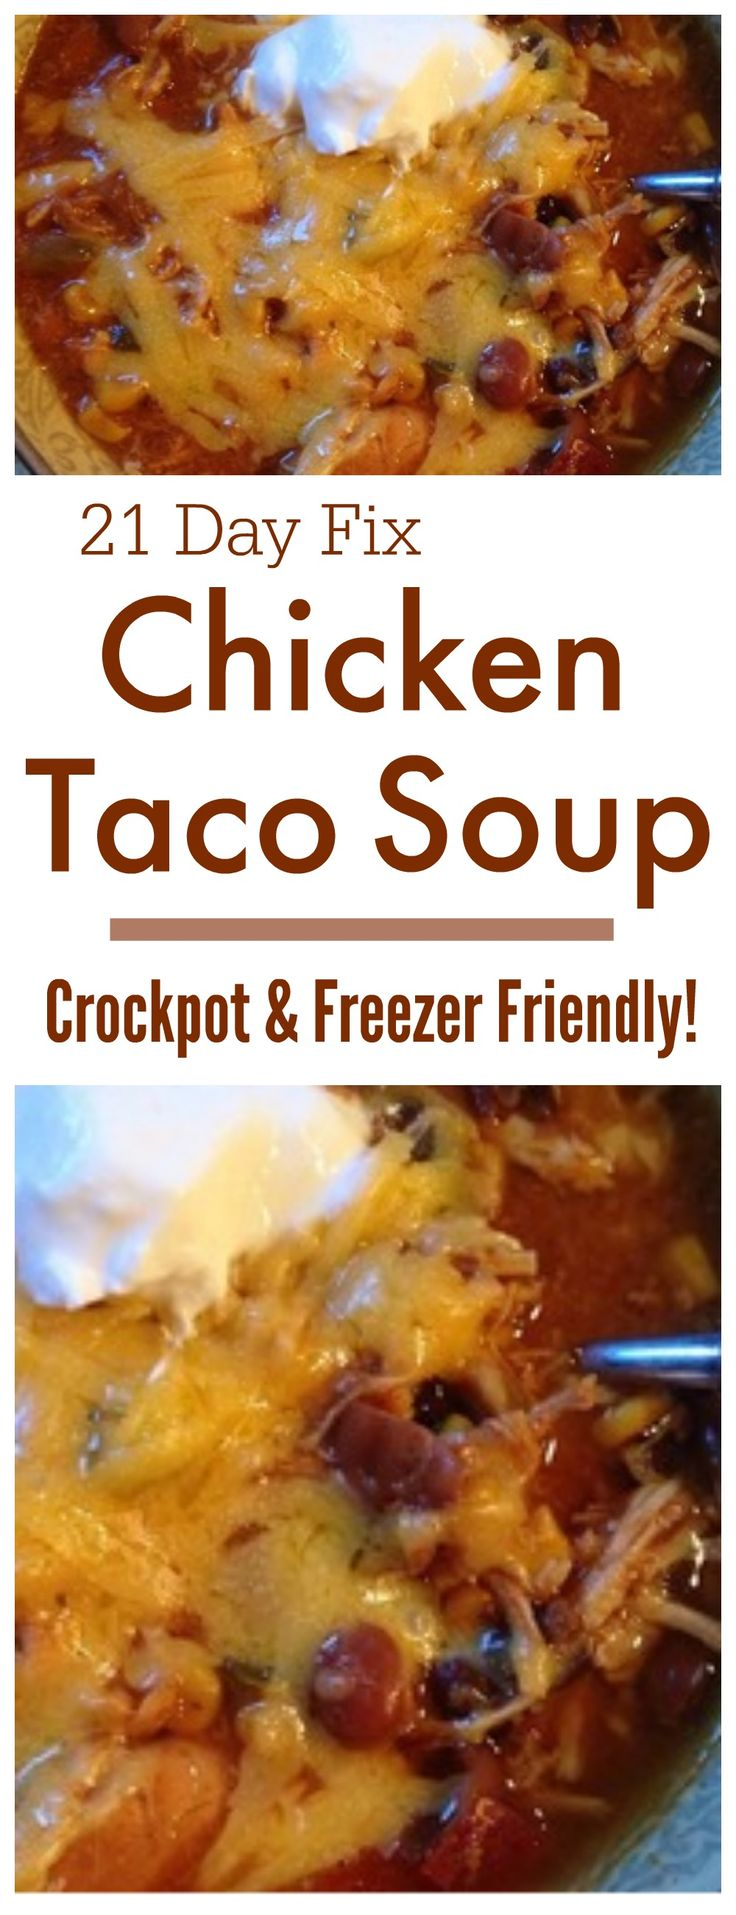 21 Day Fix Chicken Taco Soup #21dayfixtacosoup #21dayfixchickentacosoup #21dayfixdinnerrecipes #21dayfixsouprecipes #21dayfixdinner #21dayfixsoup #21dayfixrecipes #21dayfix #cleaneating #cleaneatingdinner #cleaneatingtacosoup #cleaneatingchickentacosoup #cleaneatingrecipes